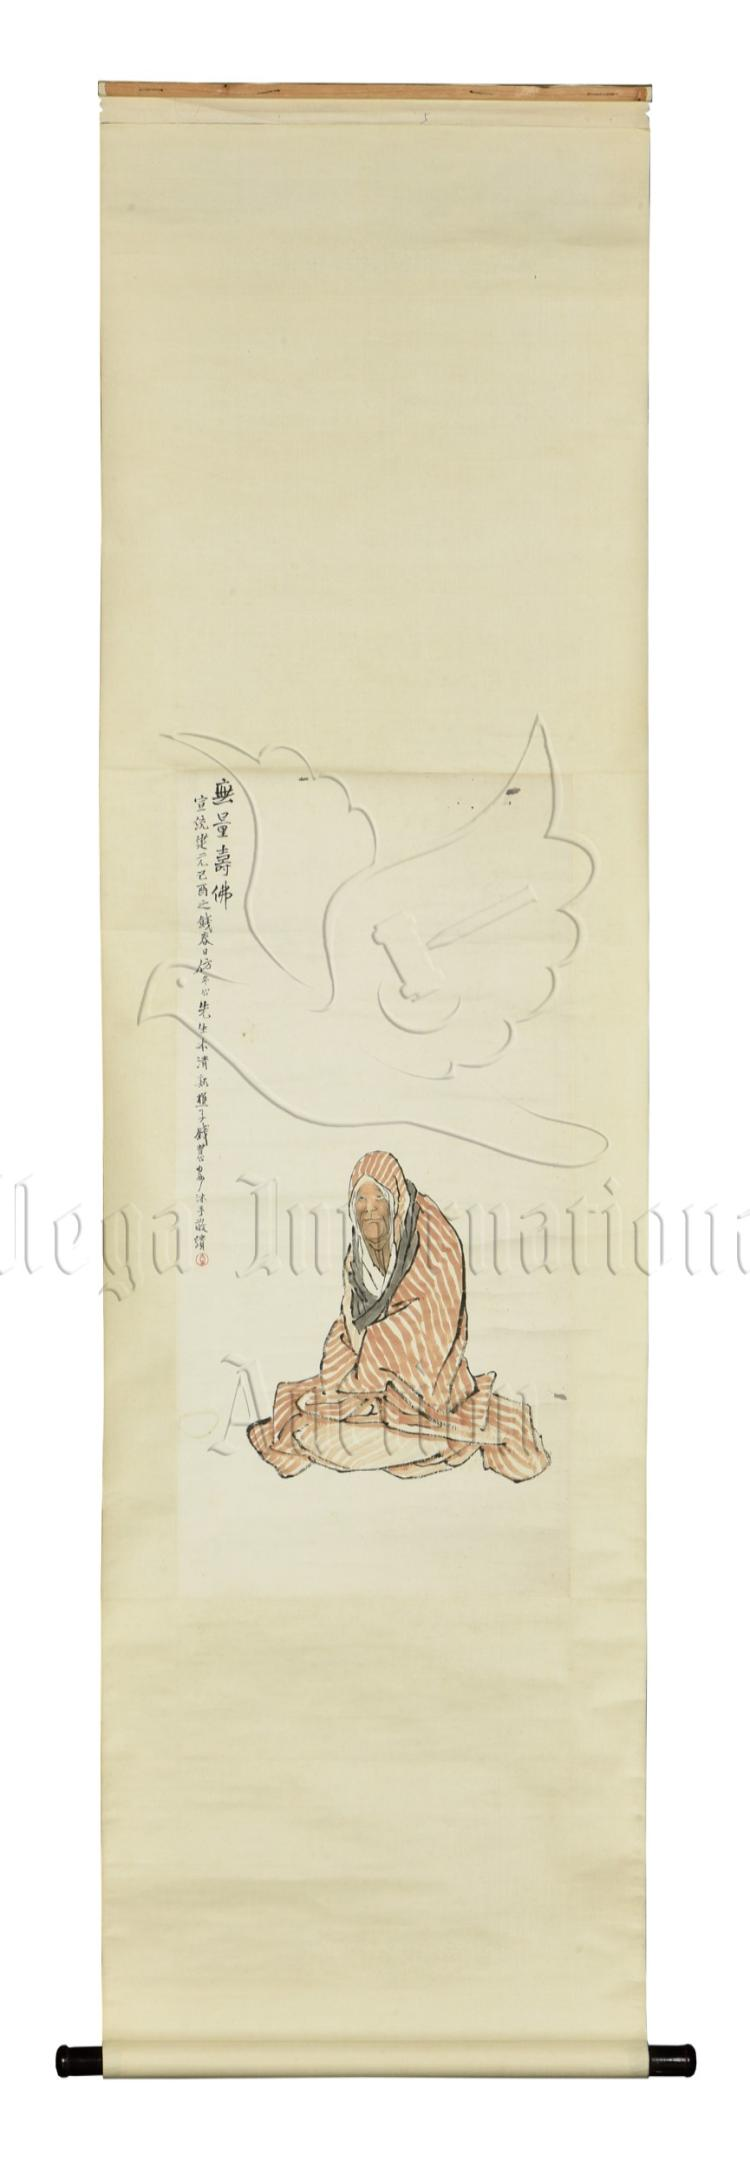 QIAN HUIAN: INK AND COLOR ON PAPER PAINTING 'AMITABHA'